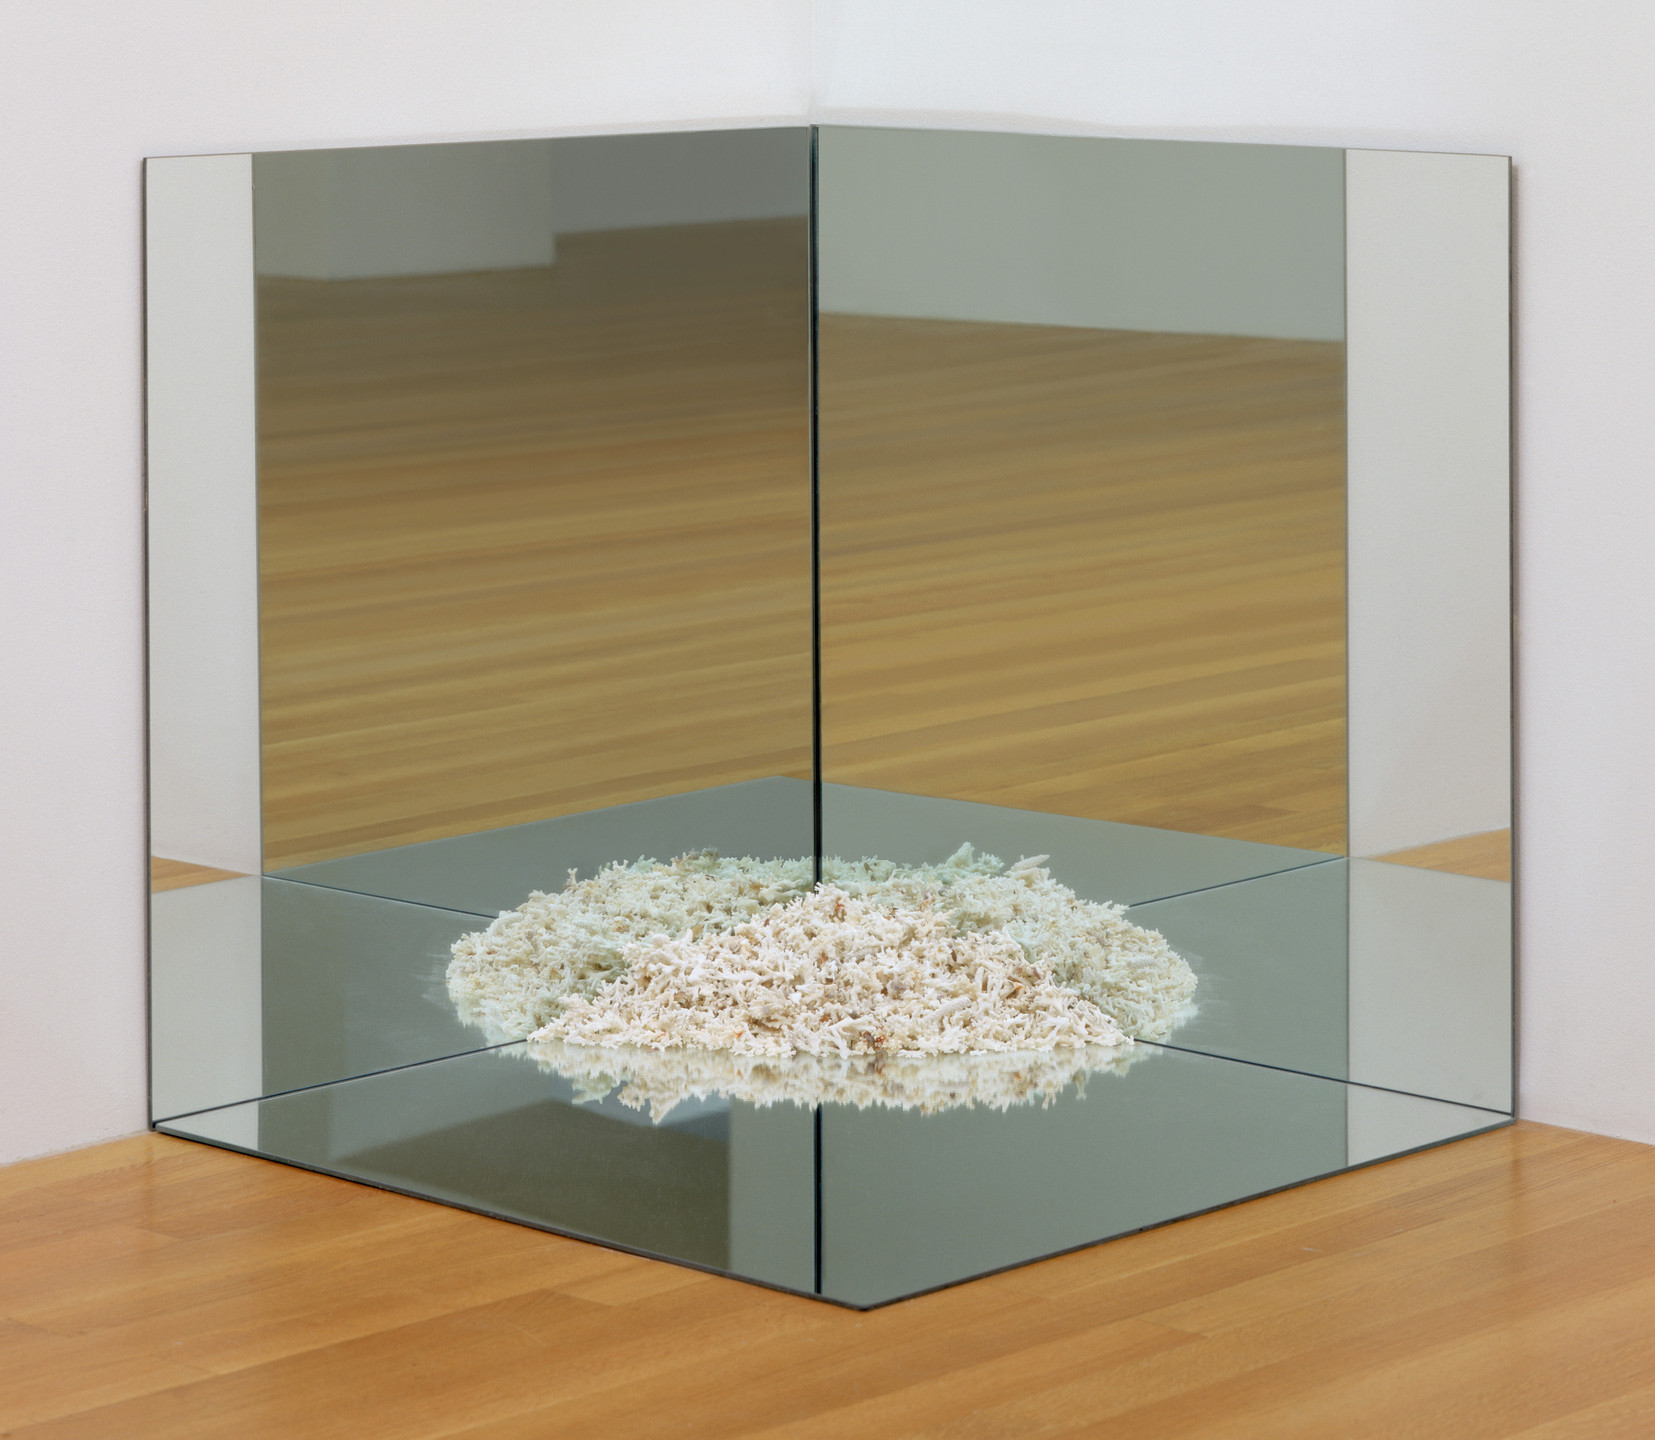 Robert Smithson. Corner Mirror with Coral. 1969